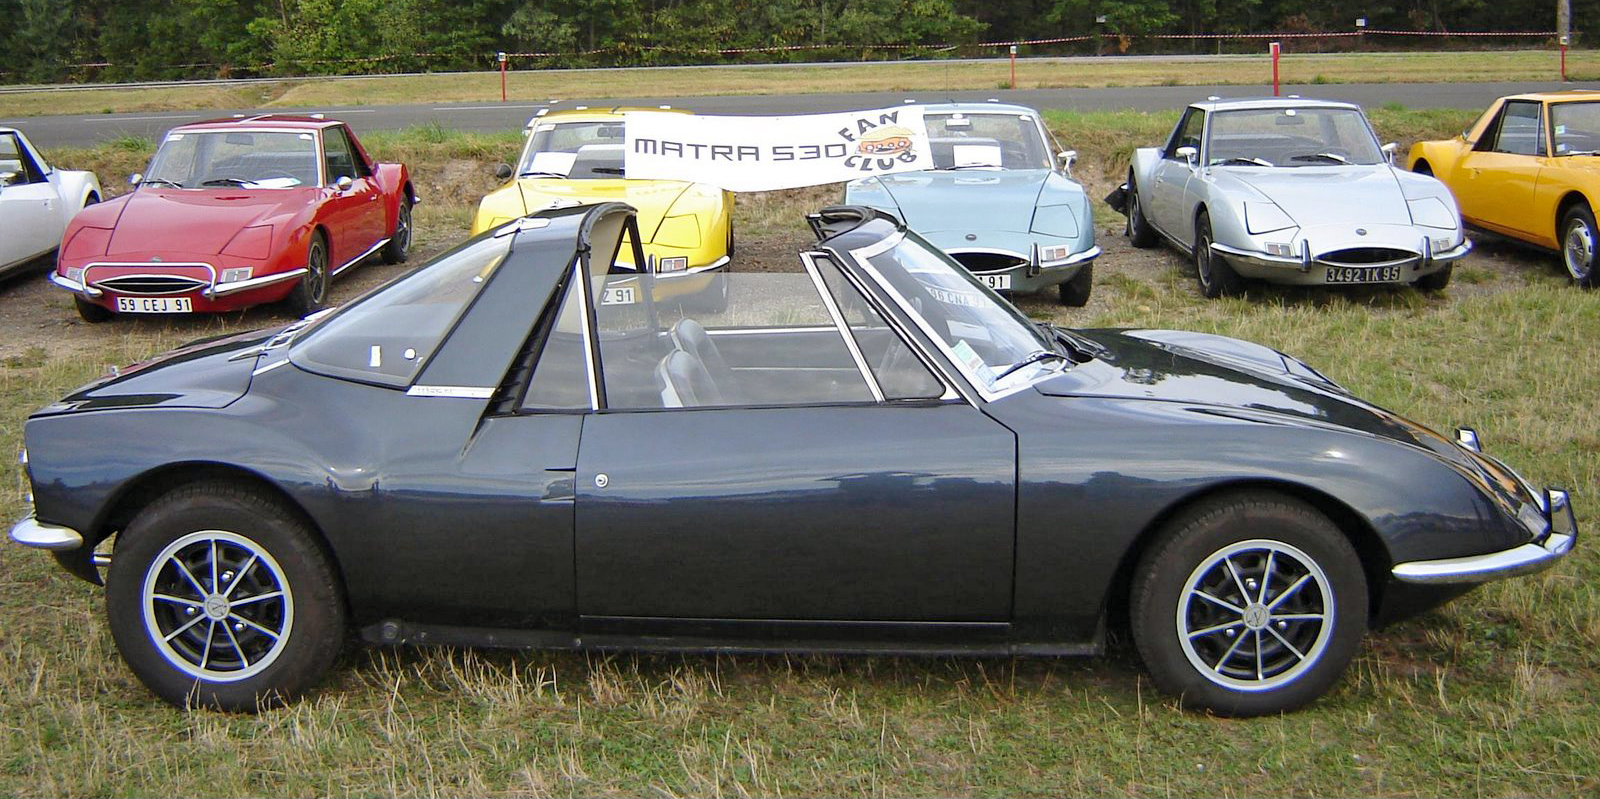 Matra 530 photo - 3